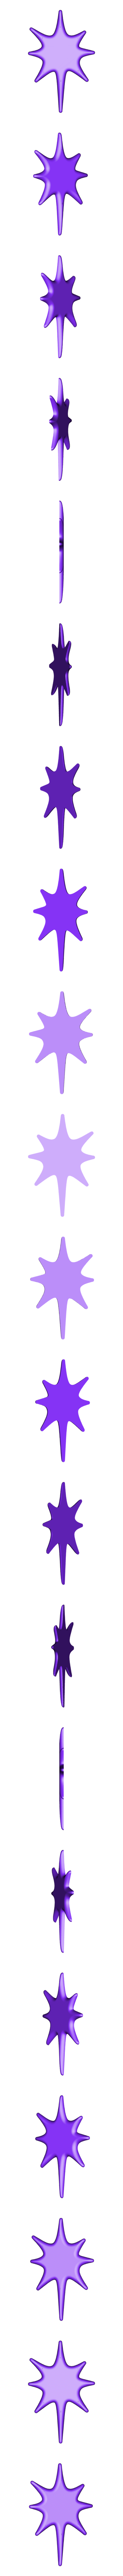 Space Decals_ Star E.stl Download free STL file Space Decals • 3D printing template, Hom3d